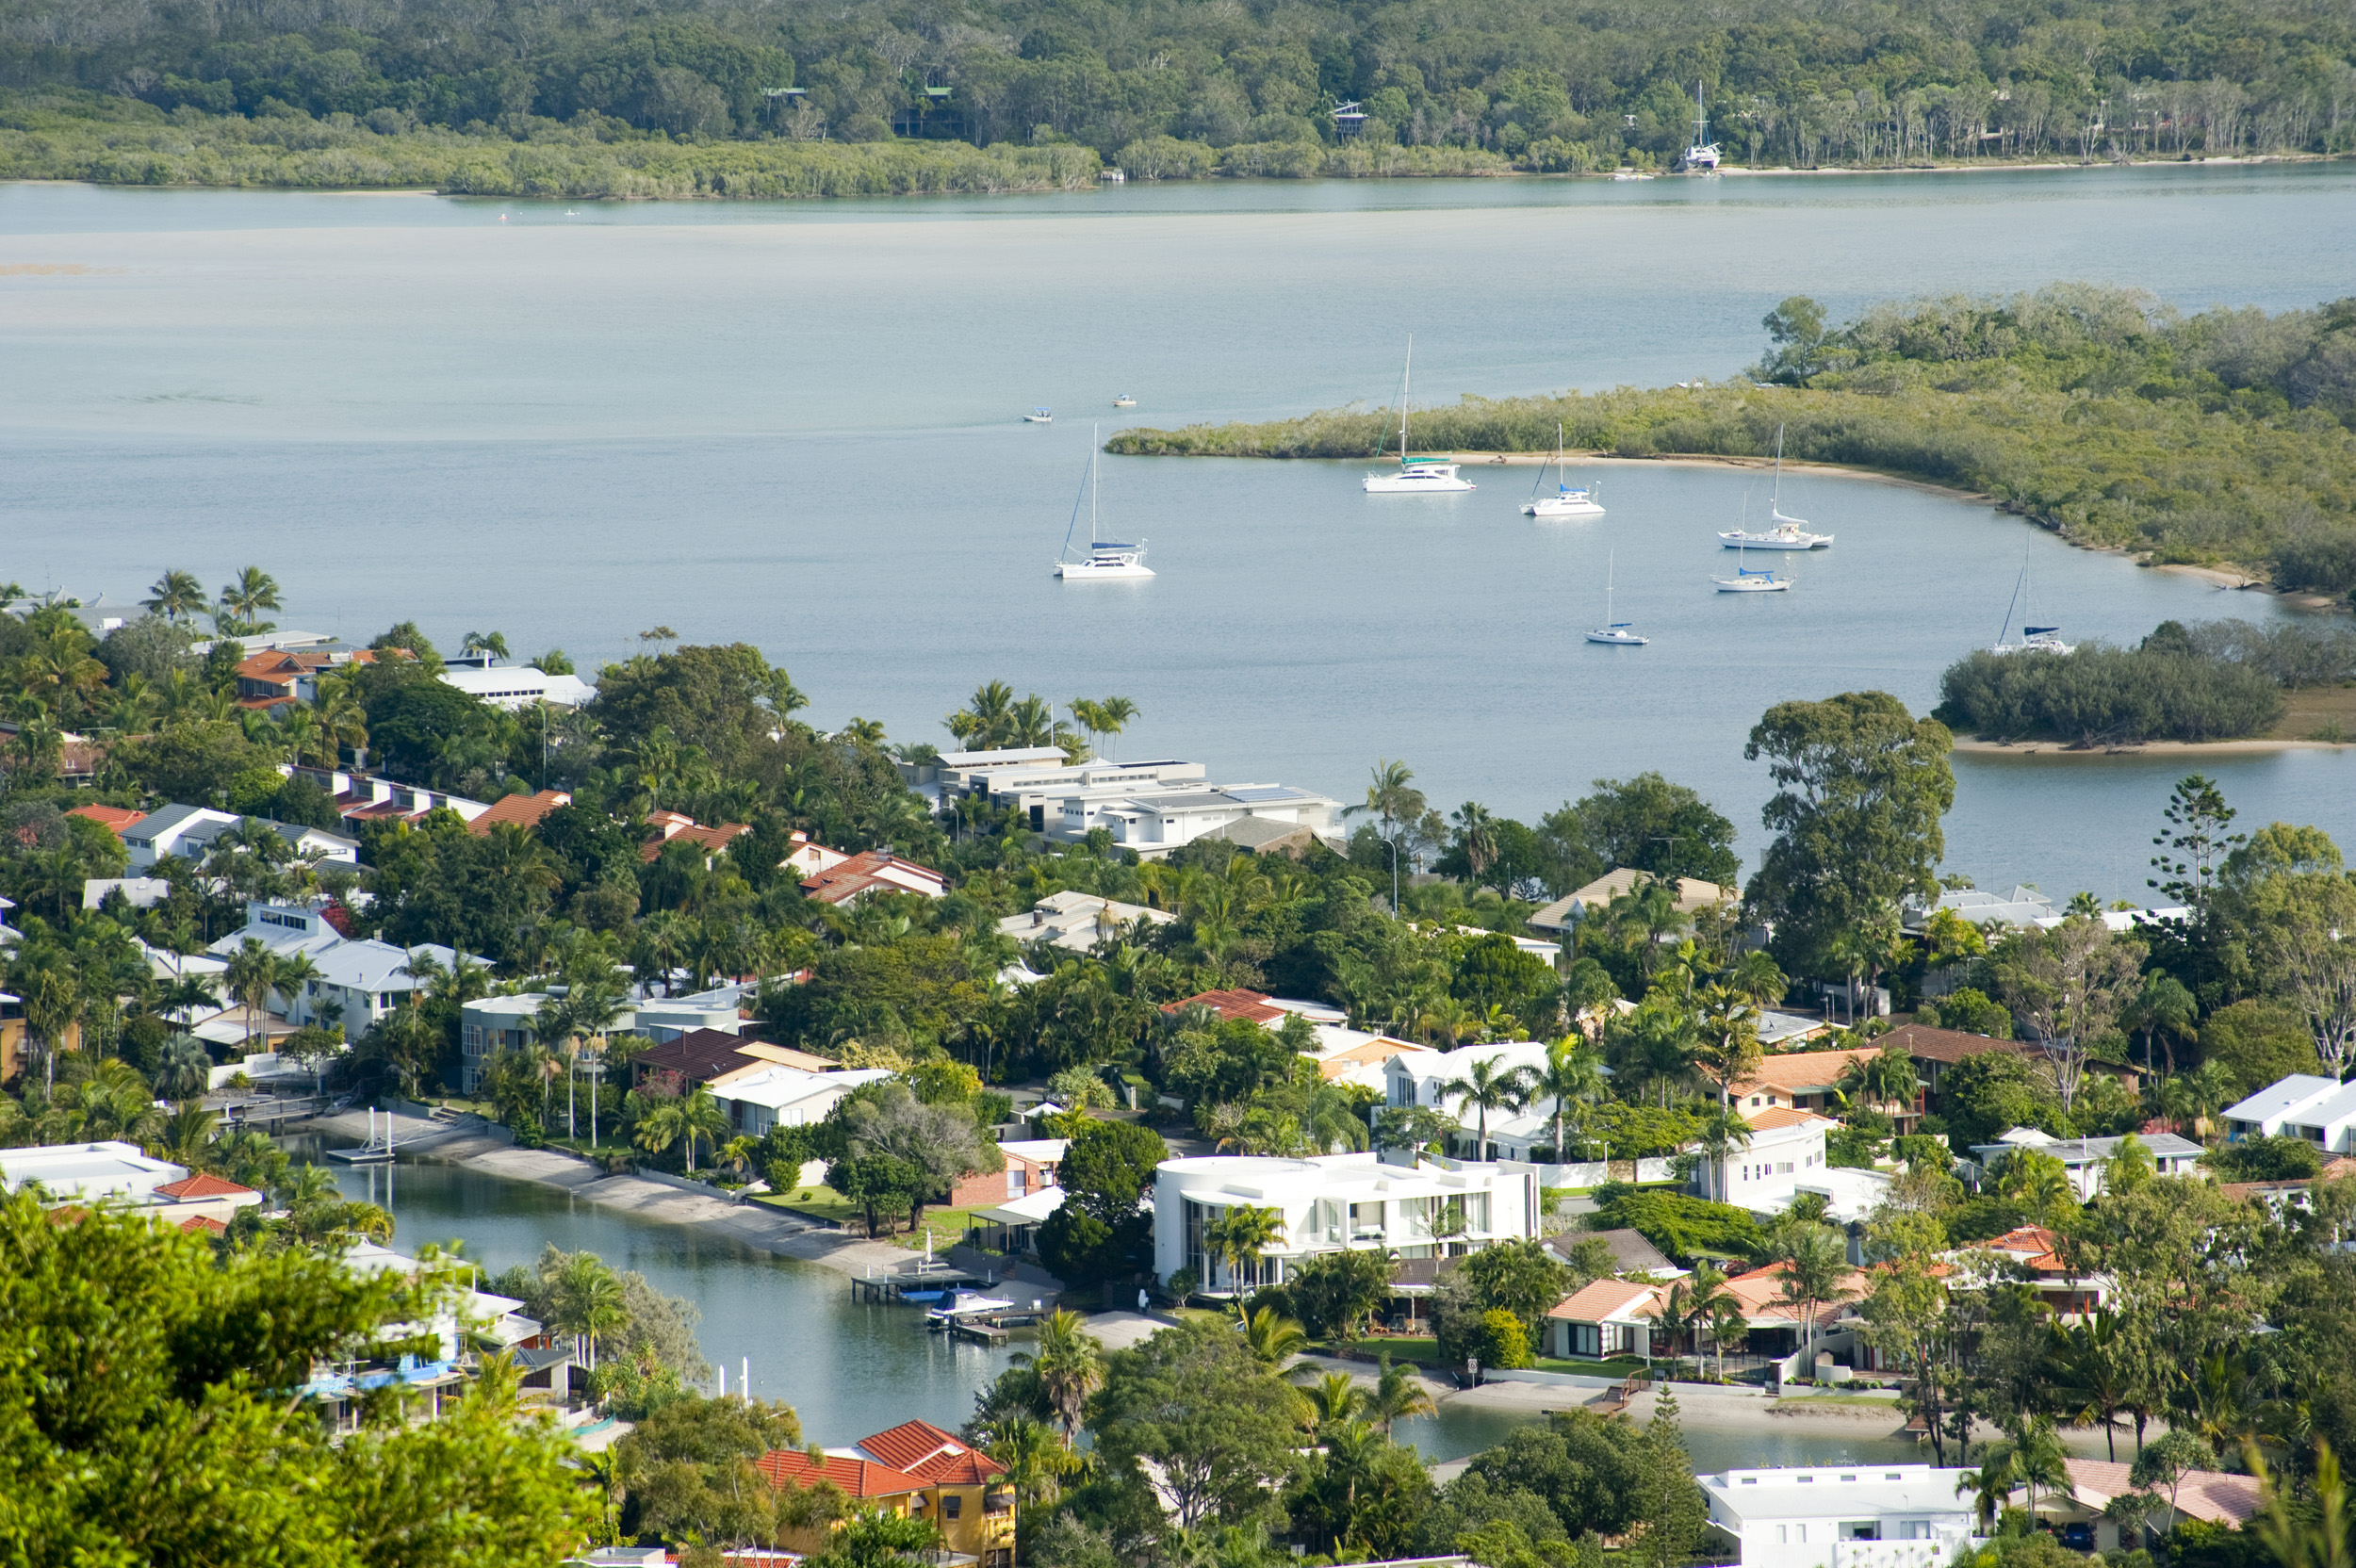 Luxury houses on the waterfront at Noosa, Queensland, Australia nestling in lush trees on the banks of the Noosa River